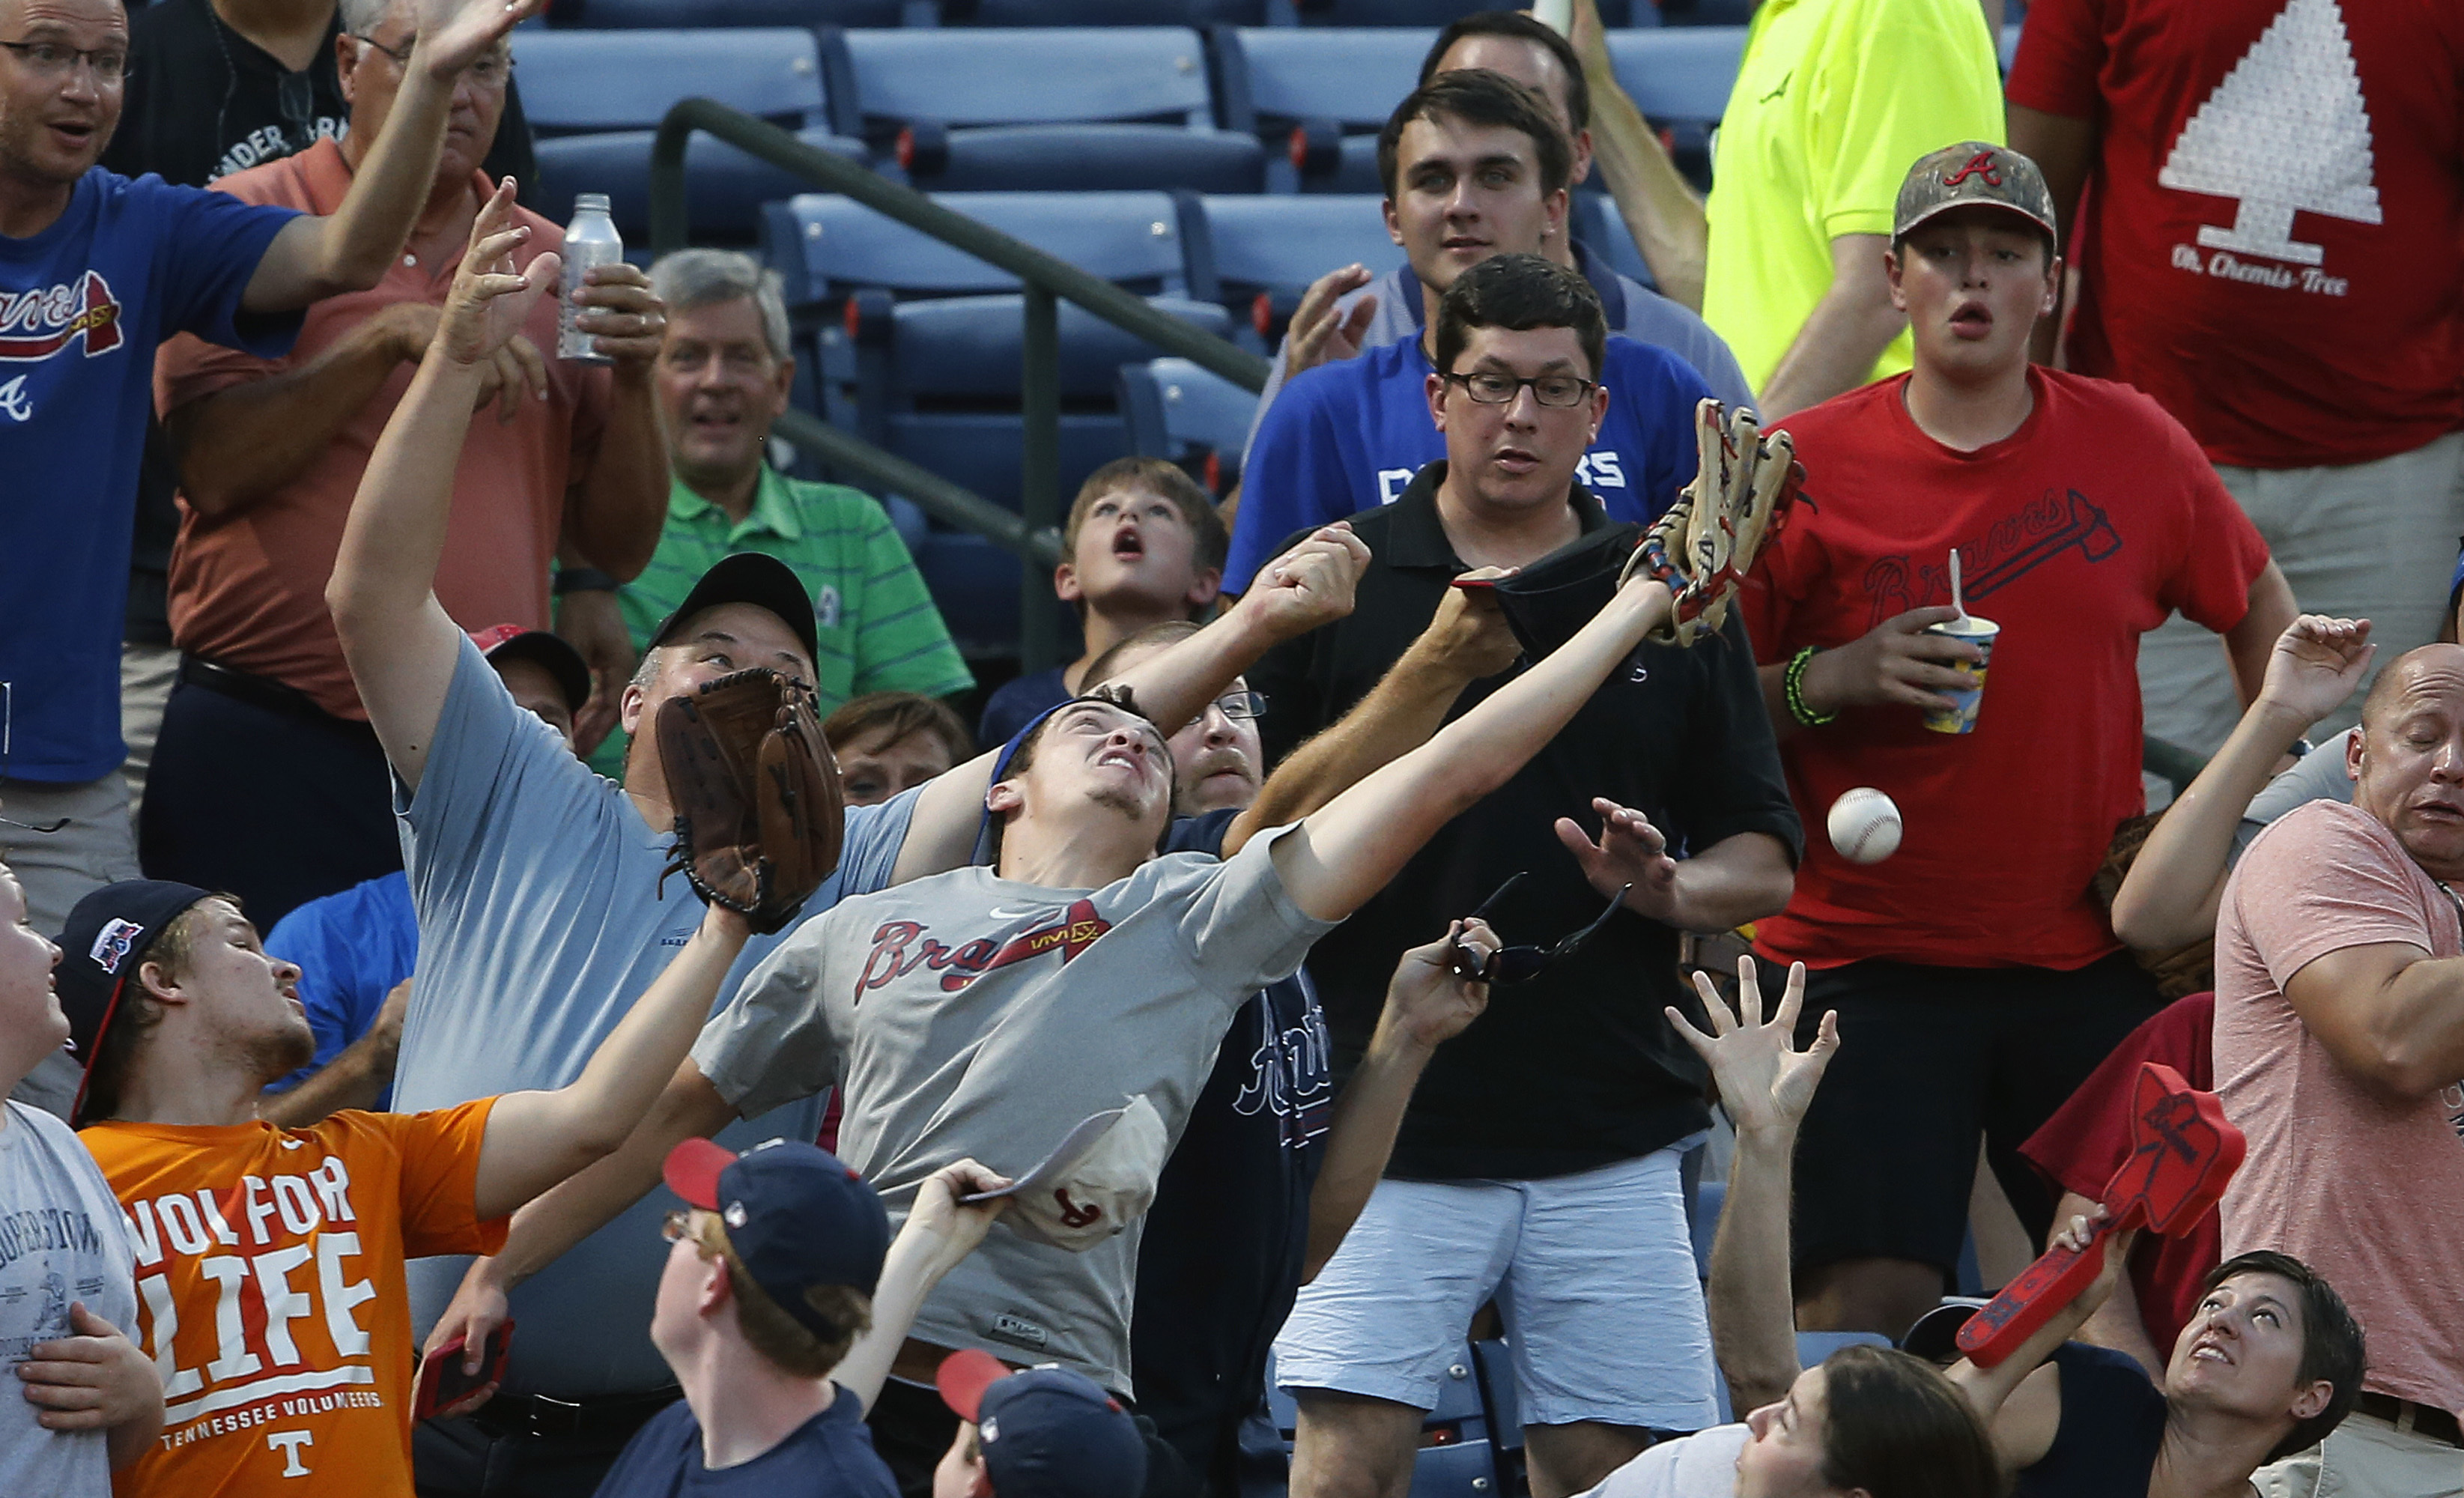 Fans reach for a foul ball during a baseball game between the Atlanta Braves and the Philadelphia Phillies, Friday, July 29, 2016, in Atlanta. (AP Photo/John Bazemore)